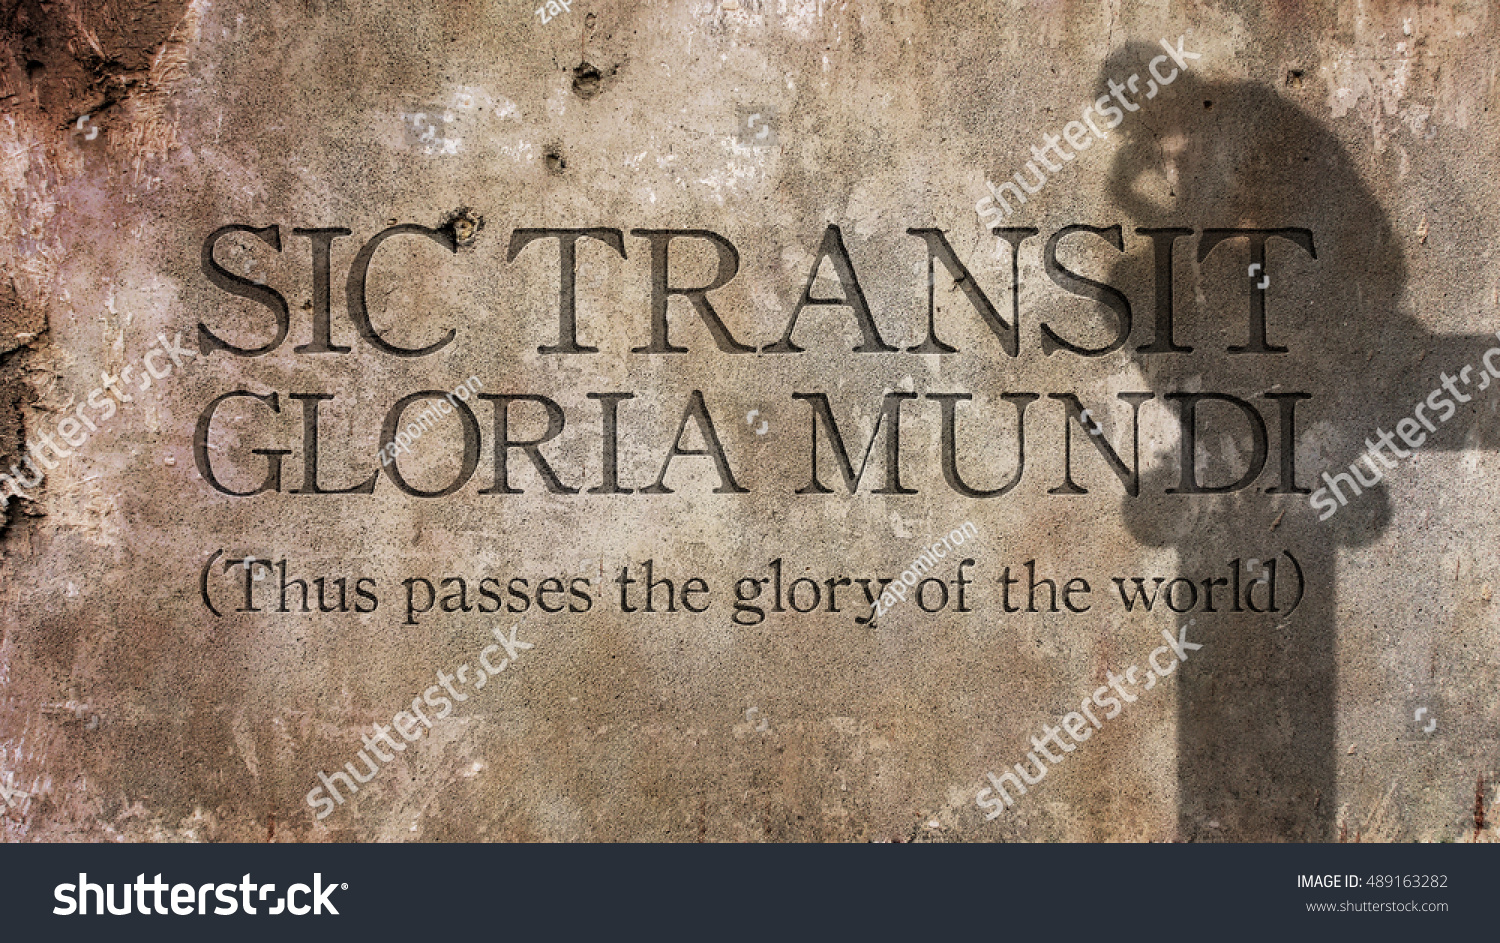 Sic Transit Gloria Mundi Latin Phrase Stock Photo (Edit Now) 489163282